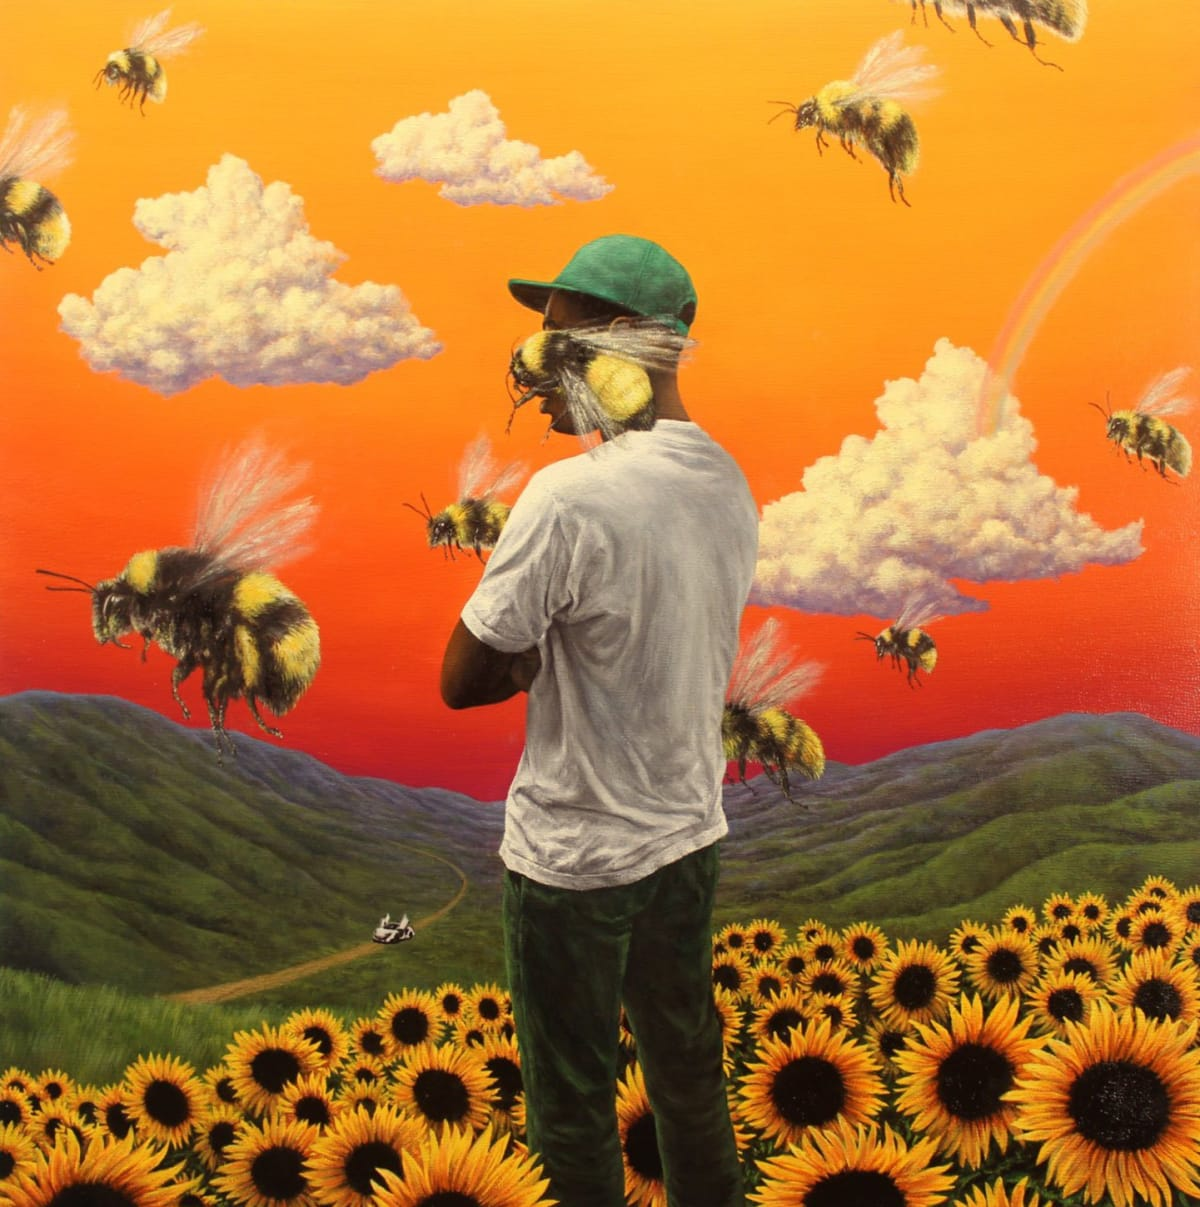 On Flower Boy Tyler The Creator Outgrows His Influences To Make